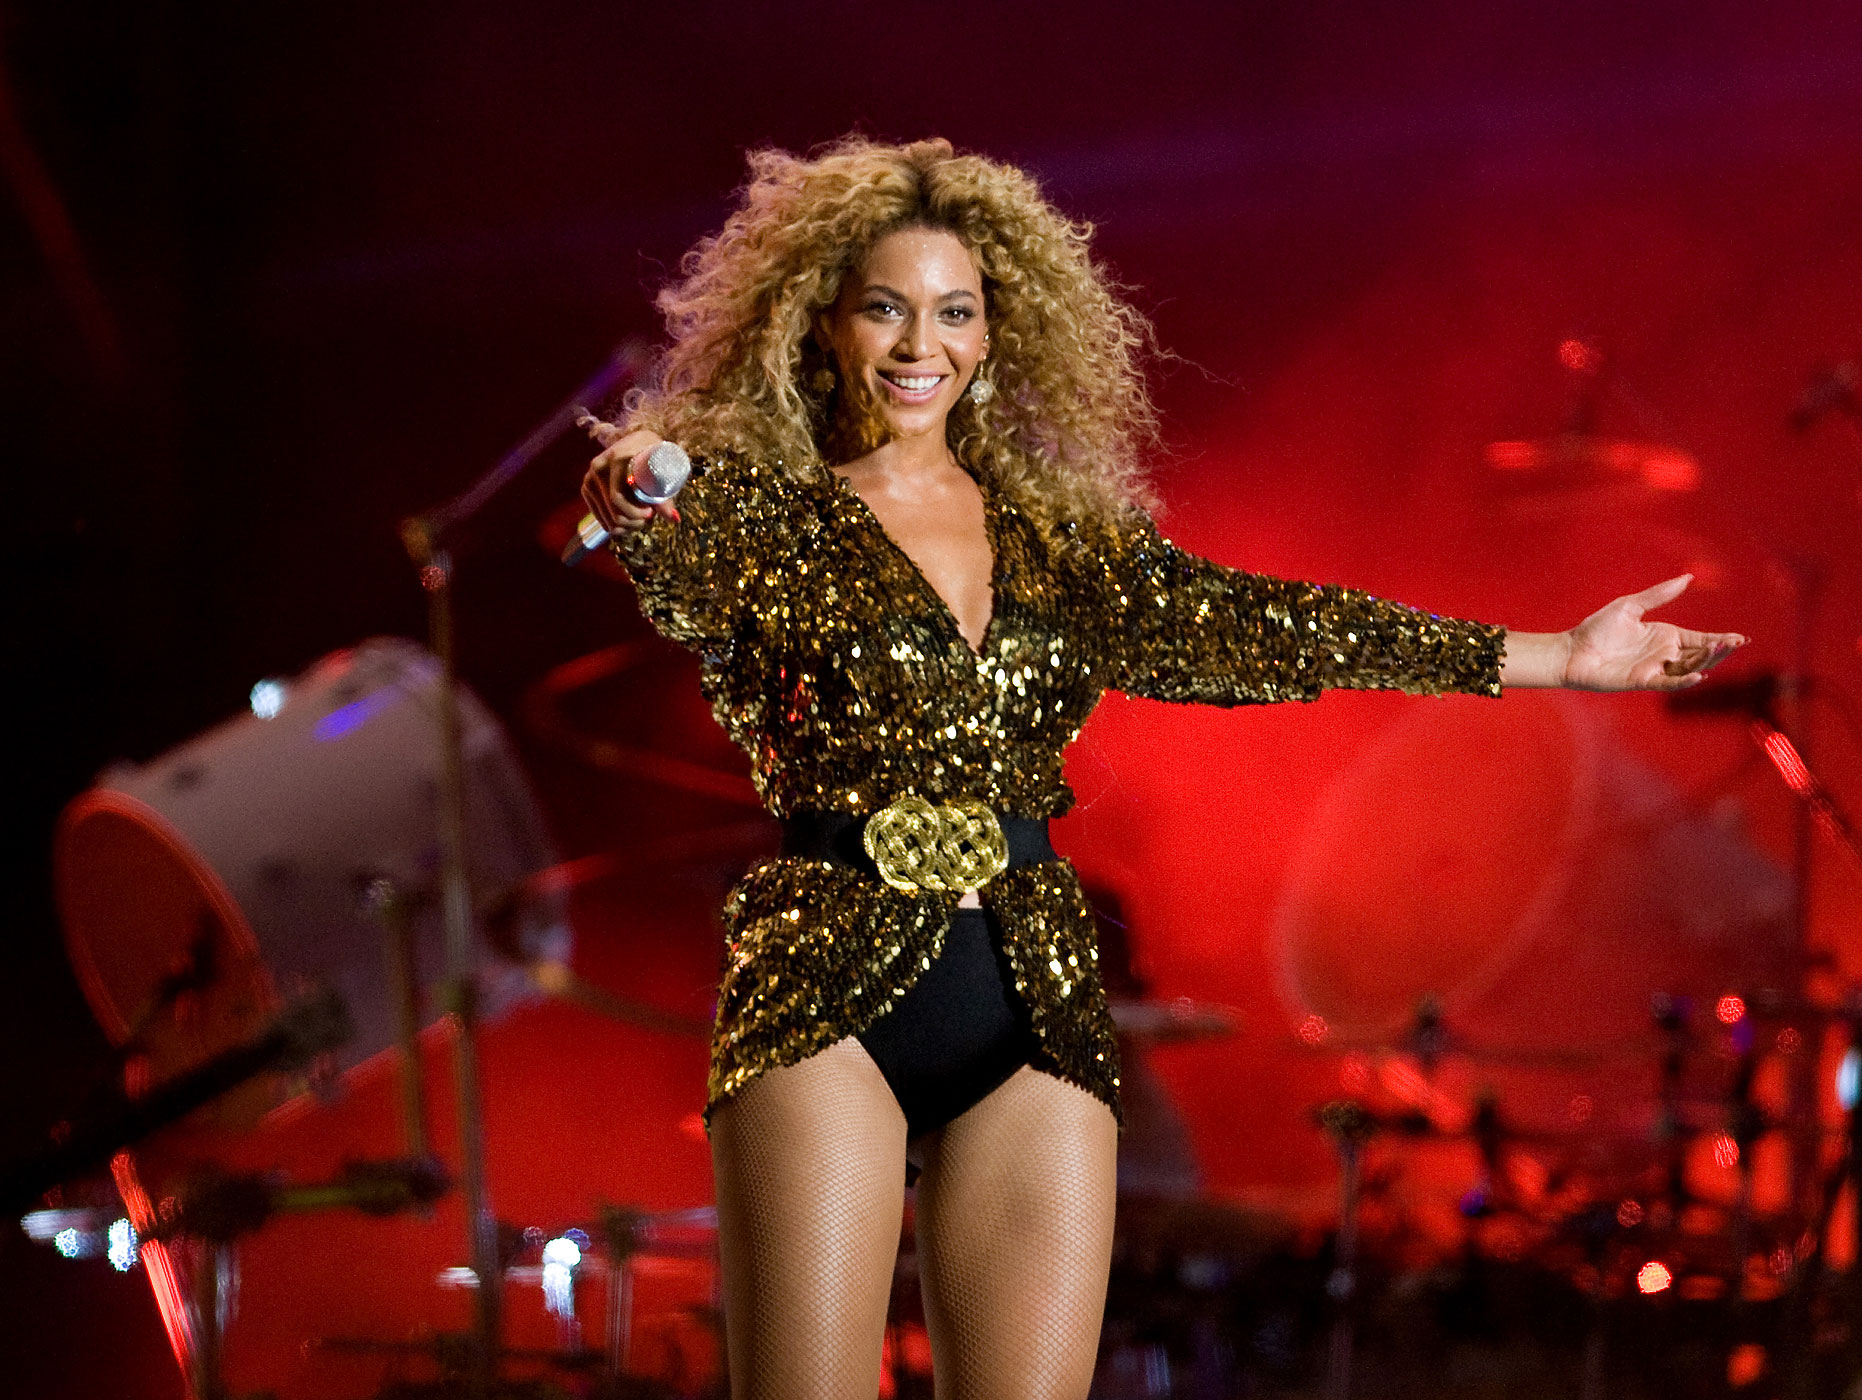 Beyonce headlines the Pyramid Stage at the Glastonbury Festival at Worthy Farm, Pilton on June 26, 2011 in Glastonbury, England.